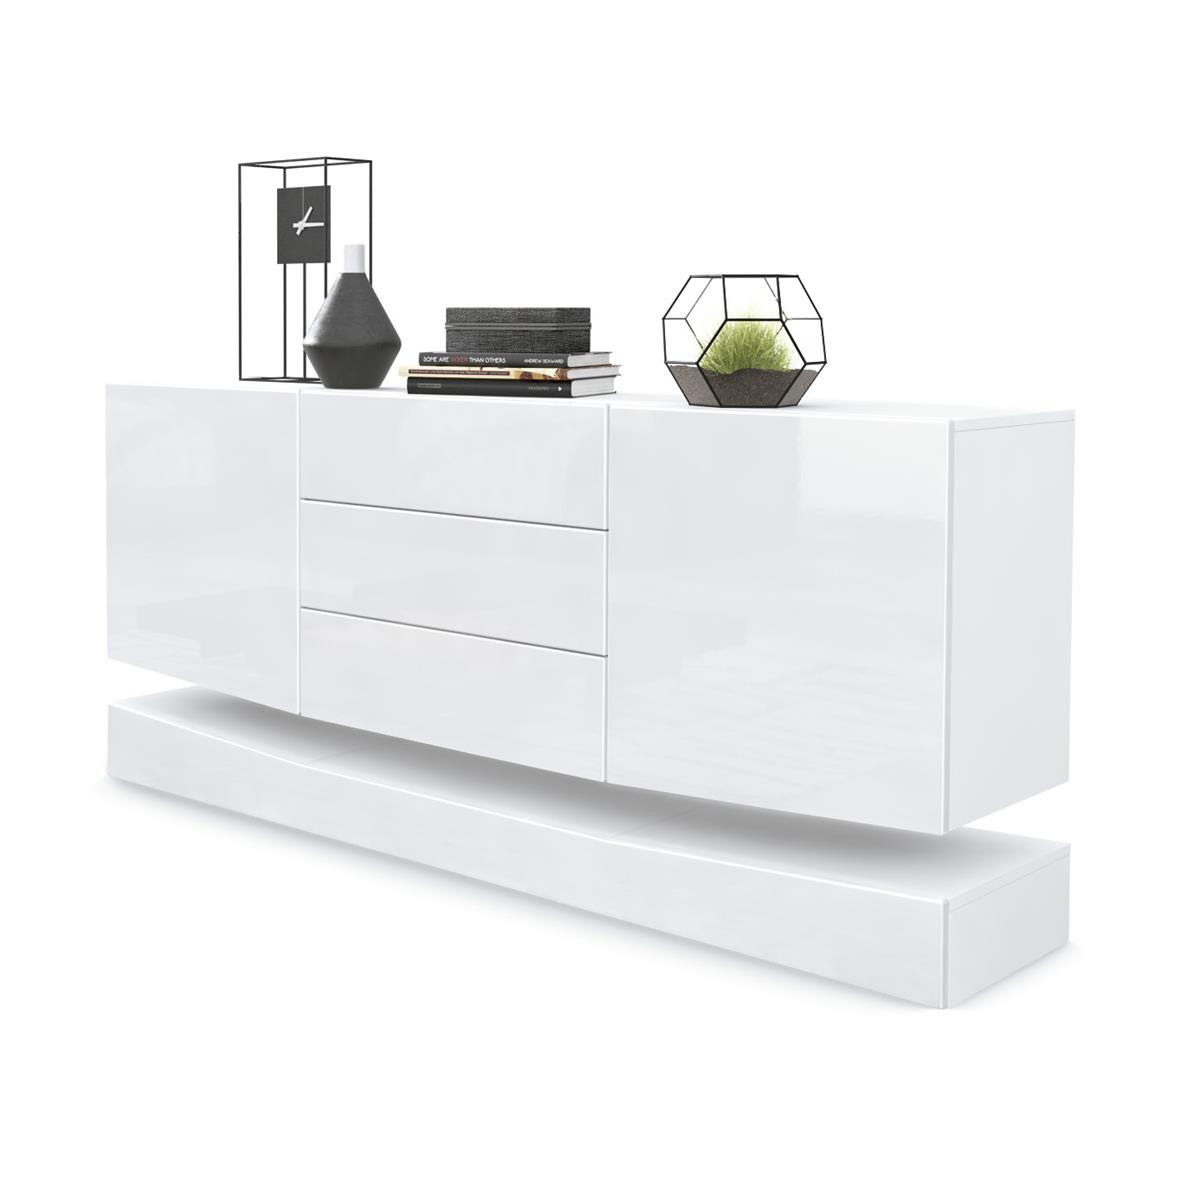 Sideboard City Mit Sockel Und Led Beleuchtung